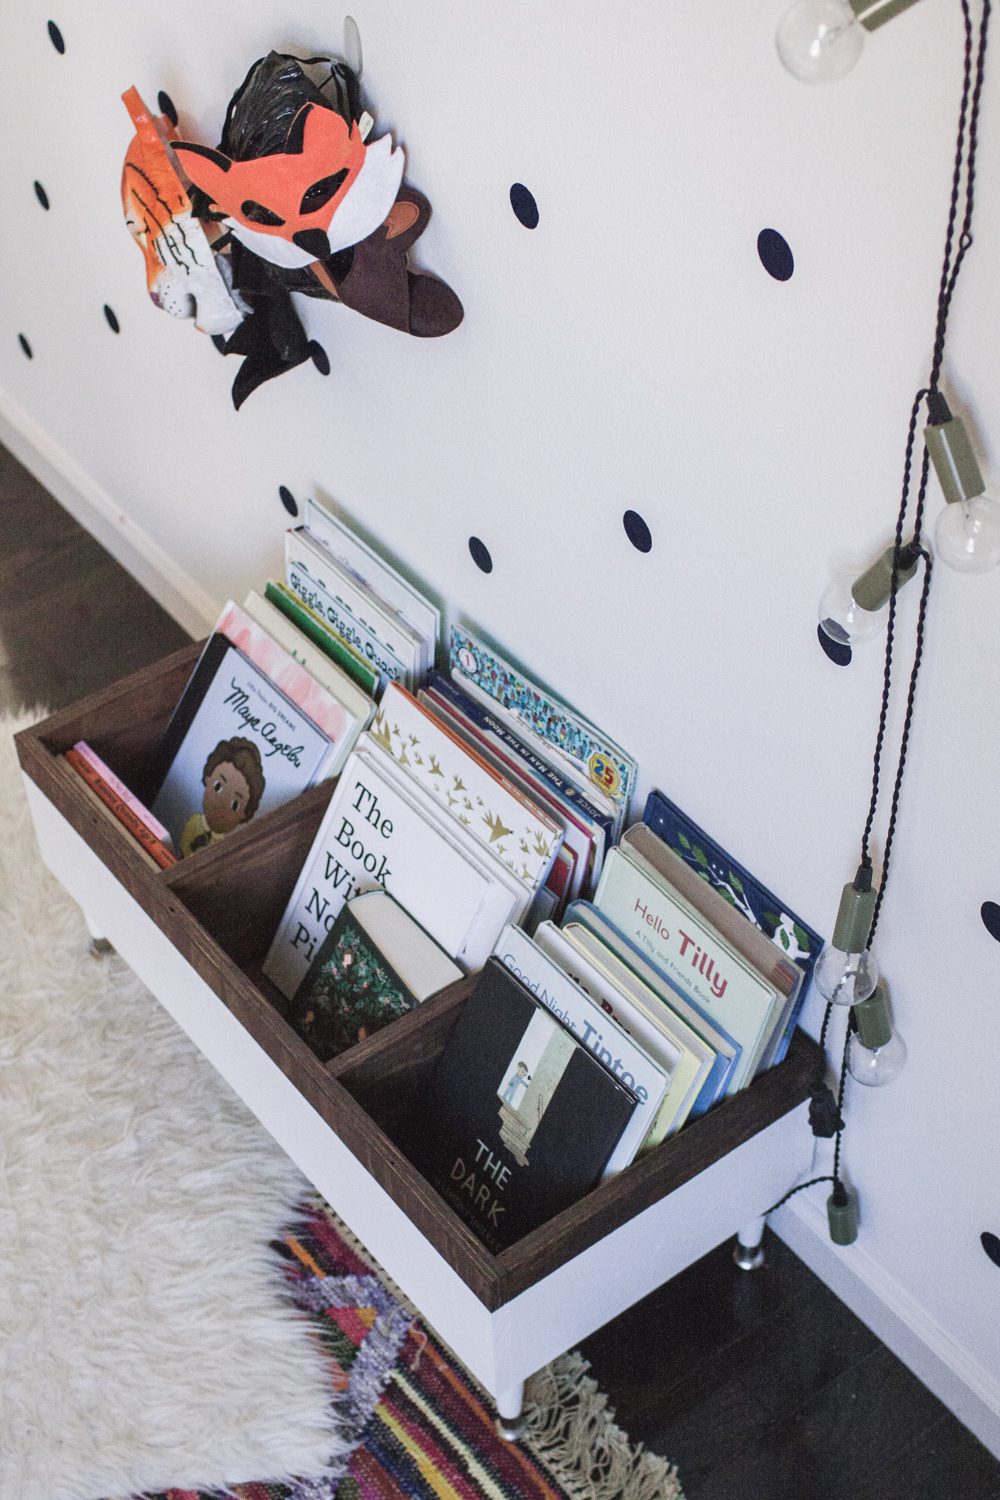 rae-ann-kelly-book-bin-diy-8695